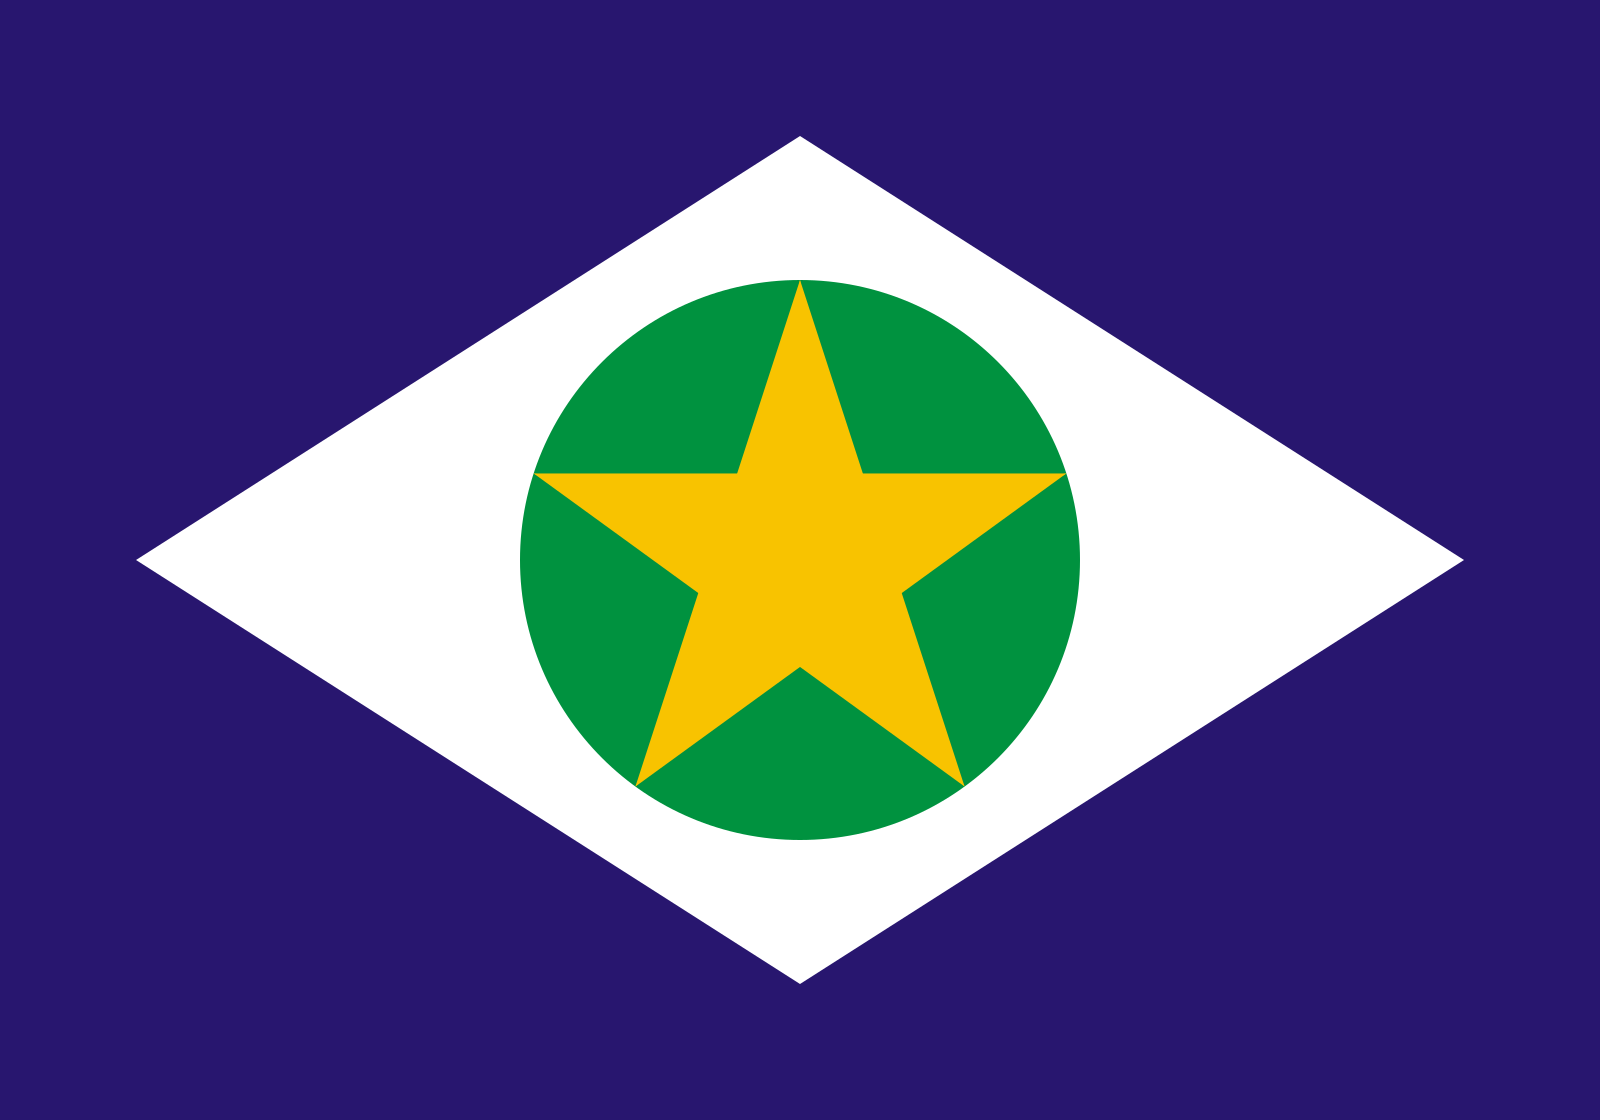 bandeira-do-estado-do-mato-grosso-2